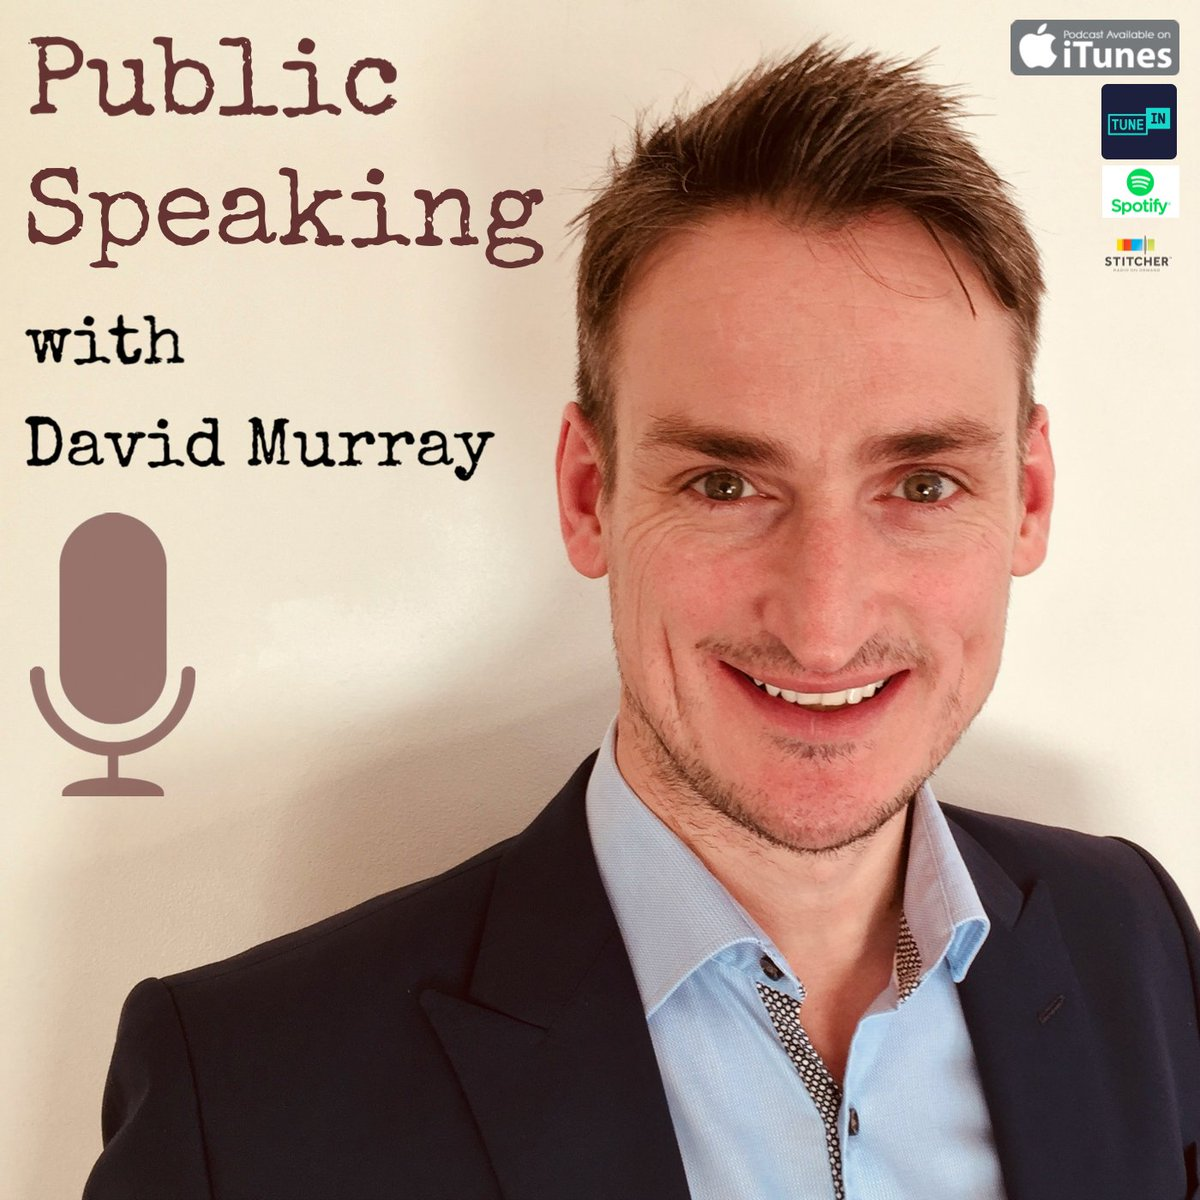 Delivering a speech or presentation this week? Share your message with confidence and flair by listening to the #Publicspeaking with David Murray podcast. How to 'Visualise' your successful public speaking! http://ow.ly/3BoW50ywoBT #communicatewithconfidence #presentationskillspic.twitter.com/qUgU9S67ch